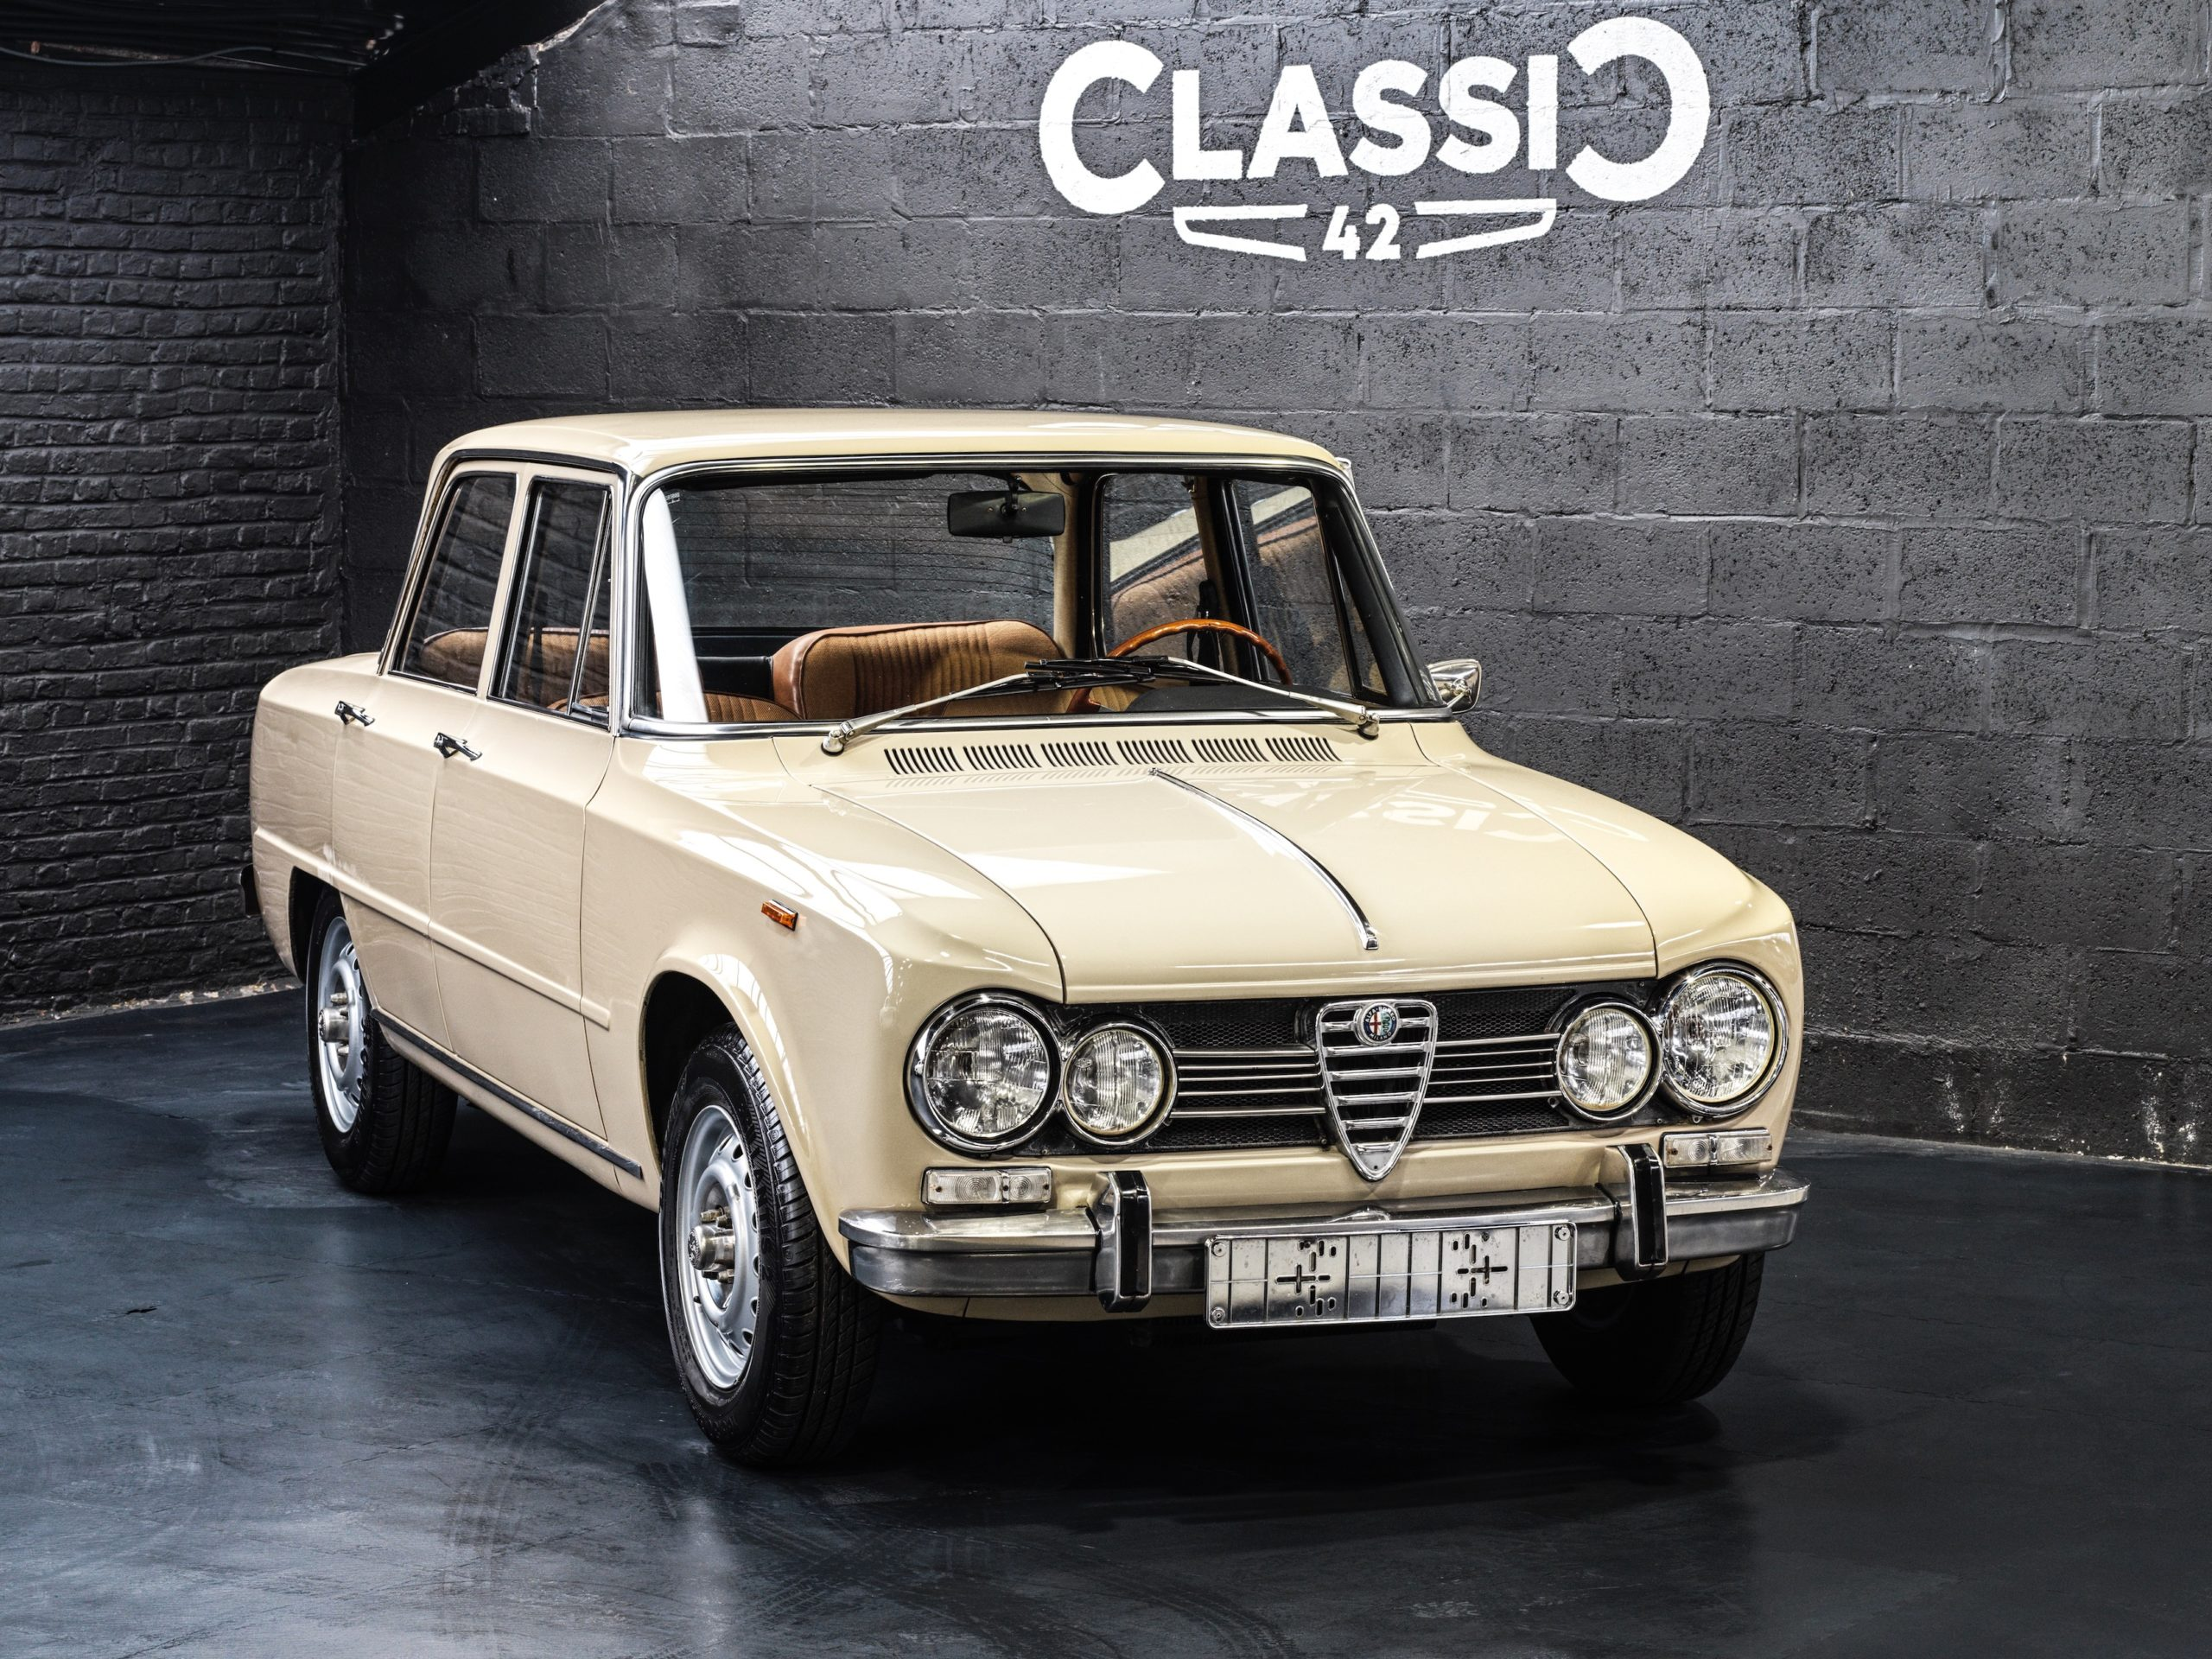 photos d'une Alfa Giulia 1600 Super de 1969 for sale by Classic 42 | Classic Car Specialist Belgium